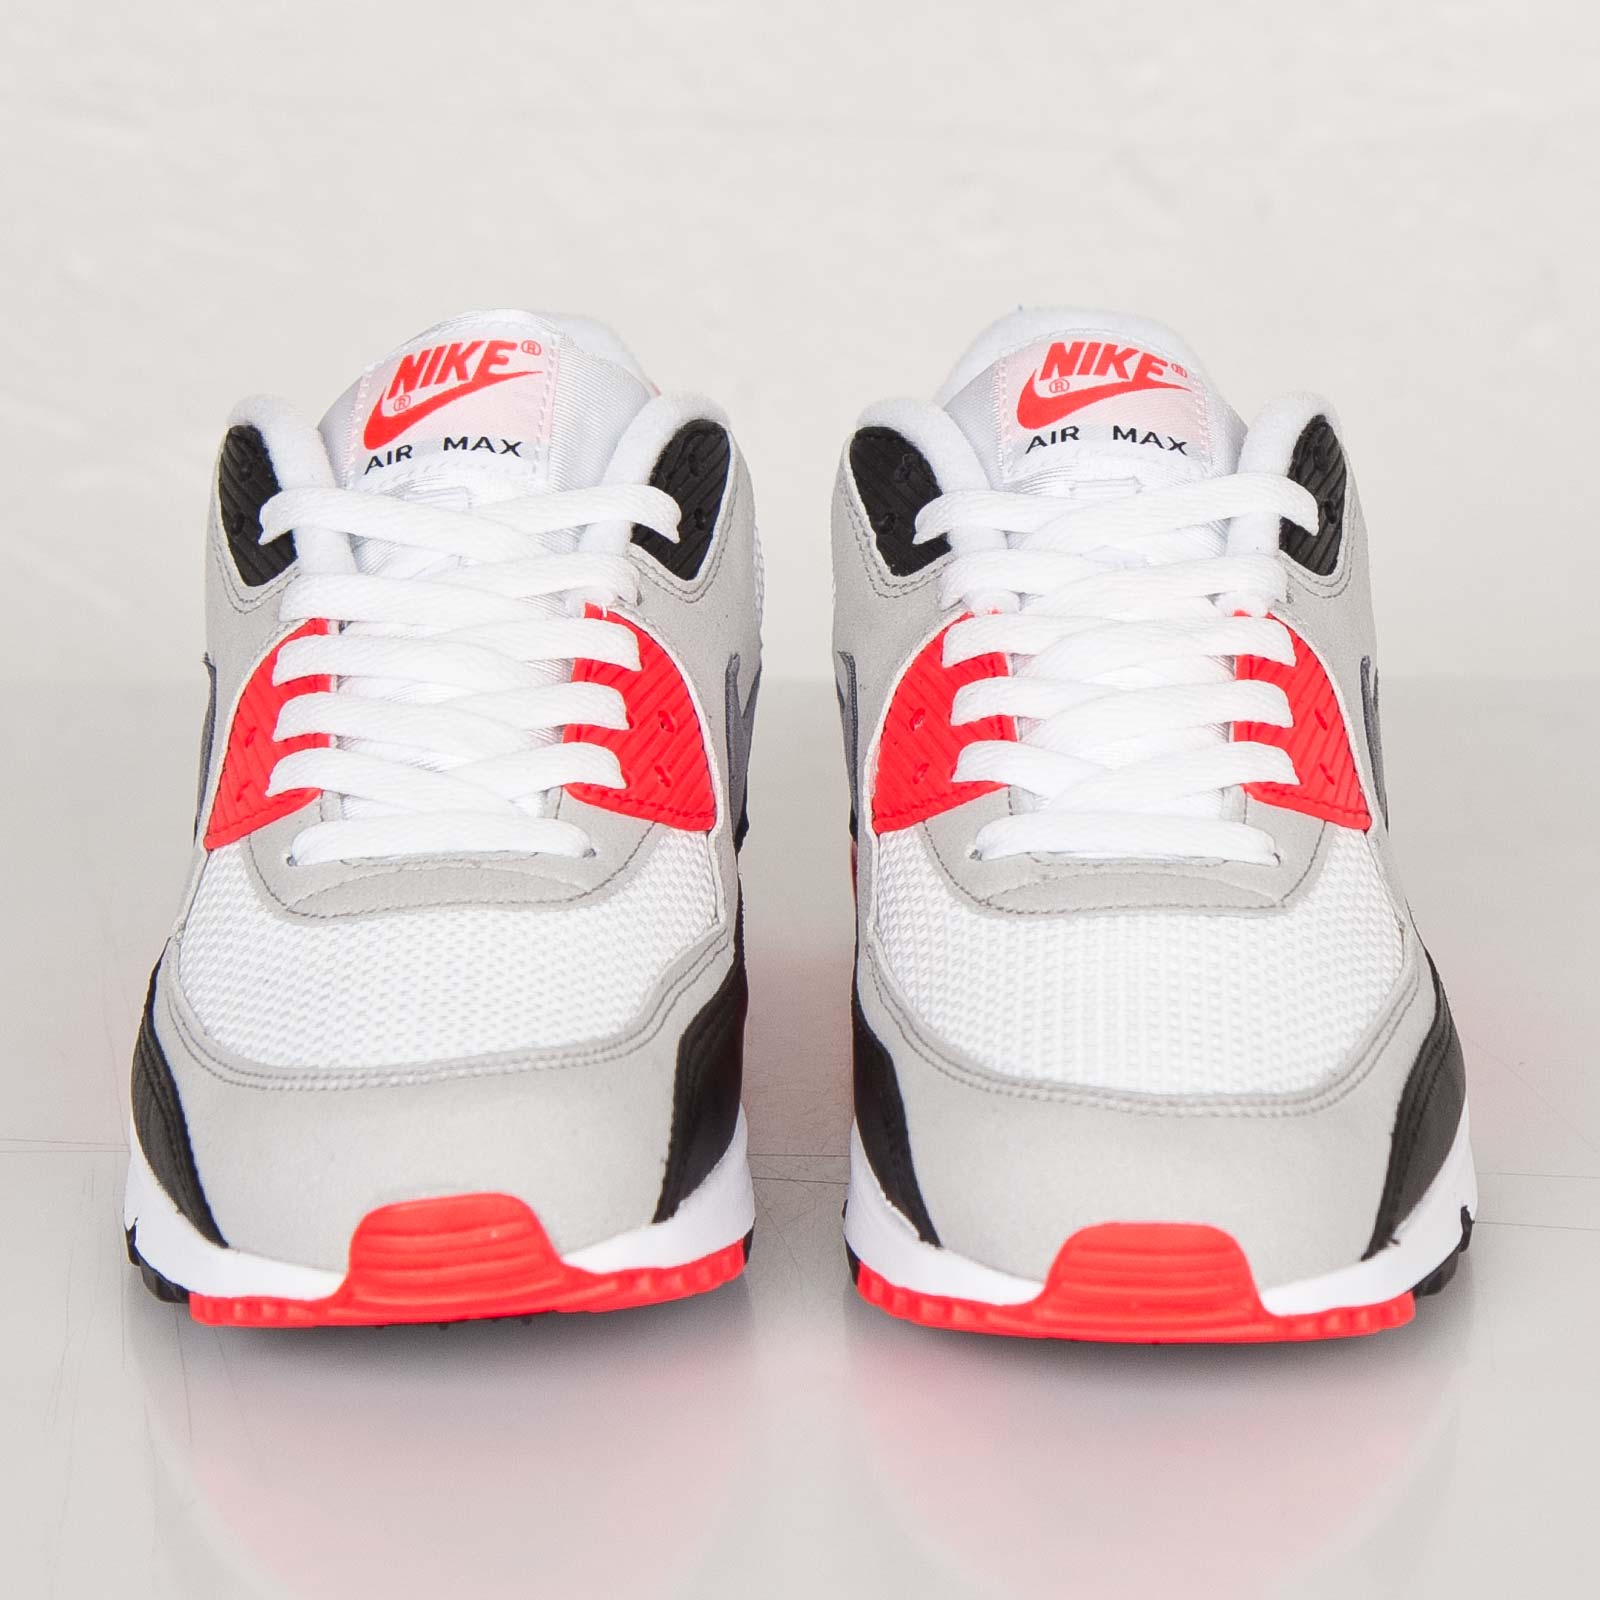 separation shoes 4dcfd cfa57 Nike Air Max 90 OG - 725233-106 - Sneakersnstuff   sneakers   streetwear  online since 1999